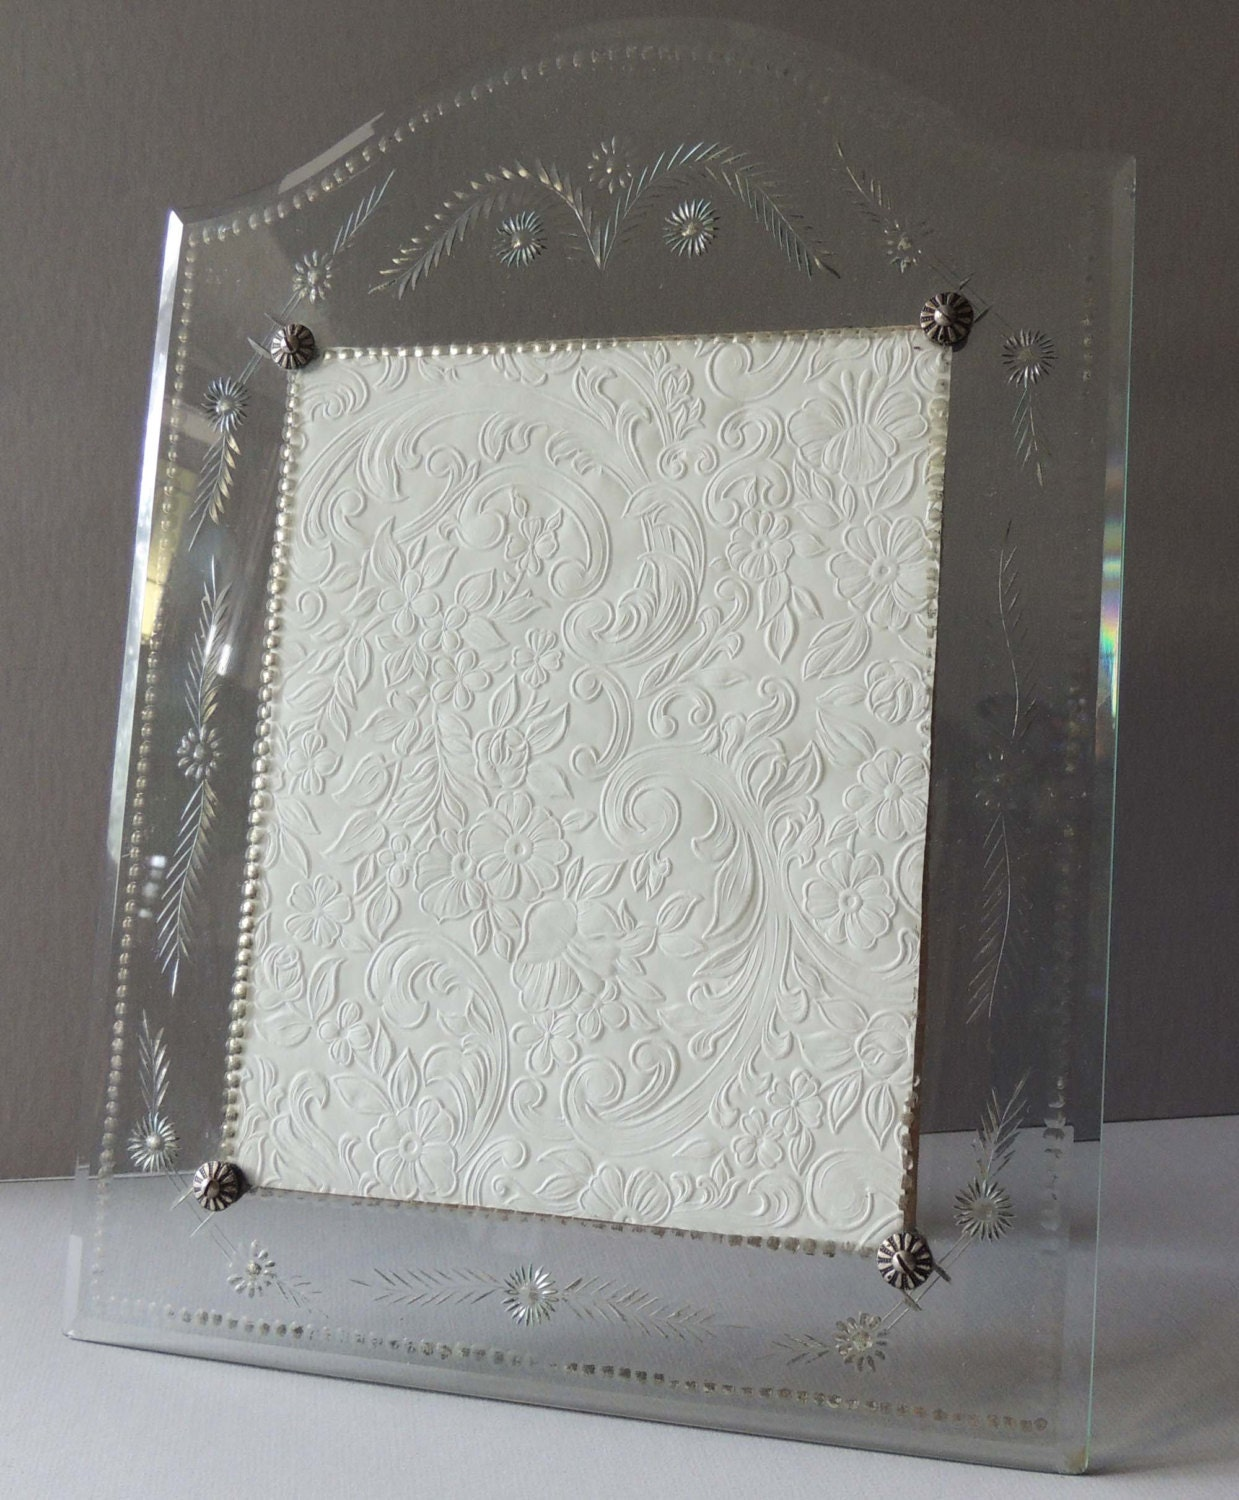 reserved floral etched glass 8 x 10 photo frame 8 x 10